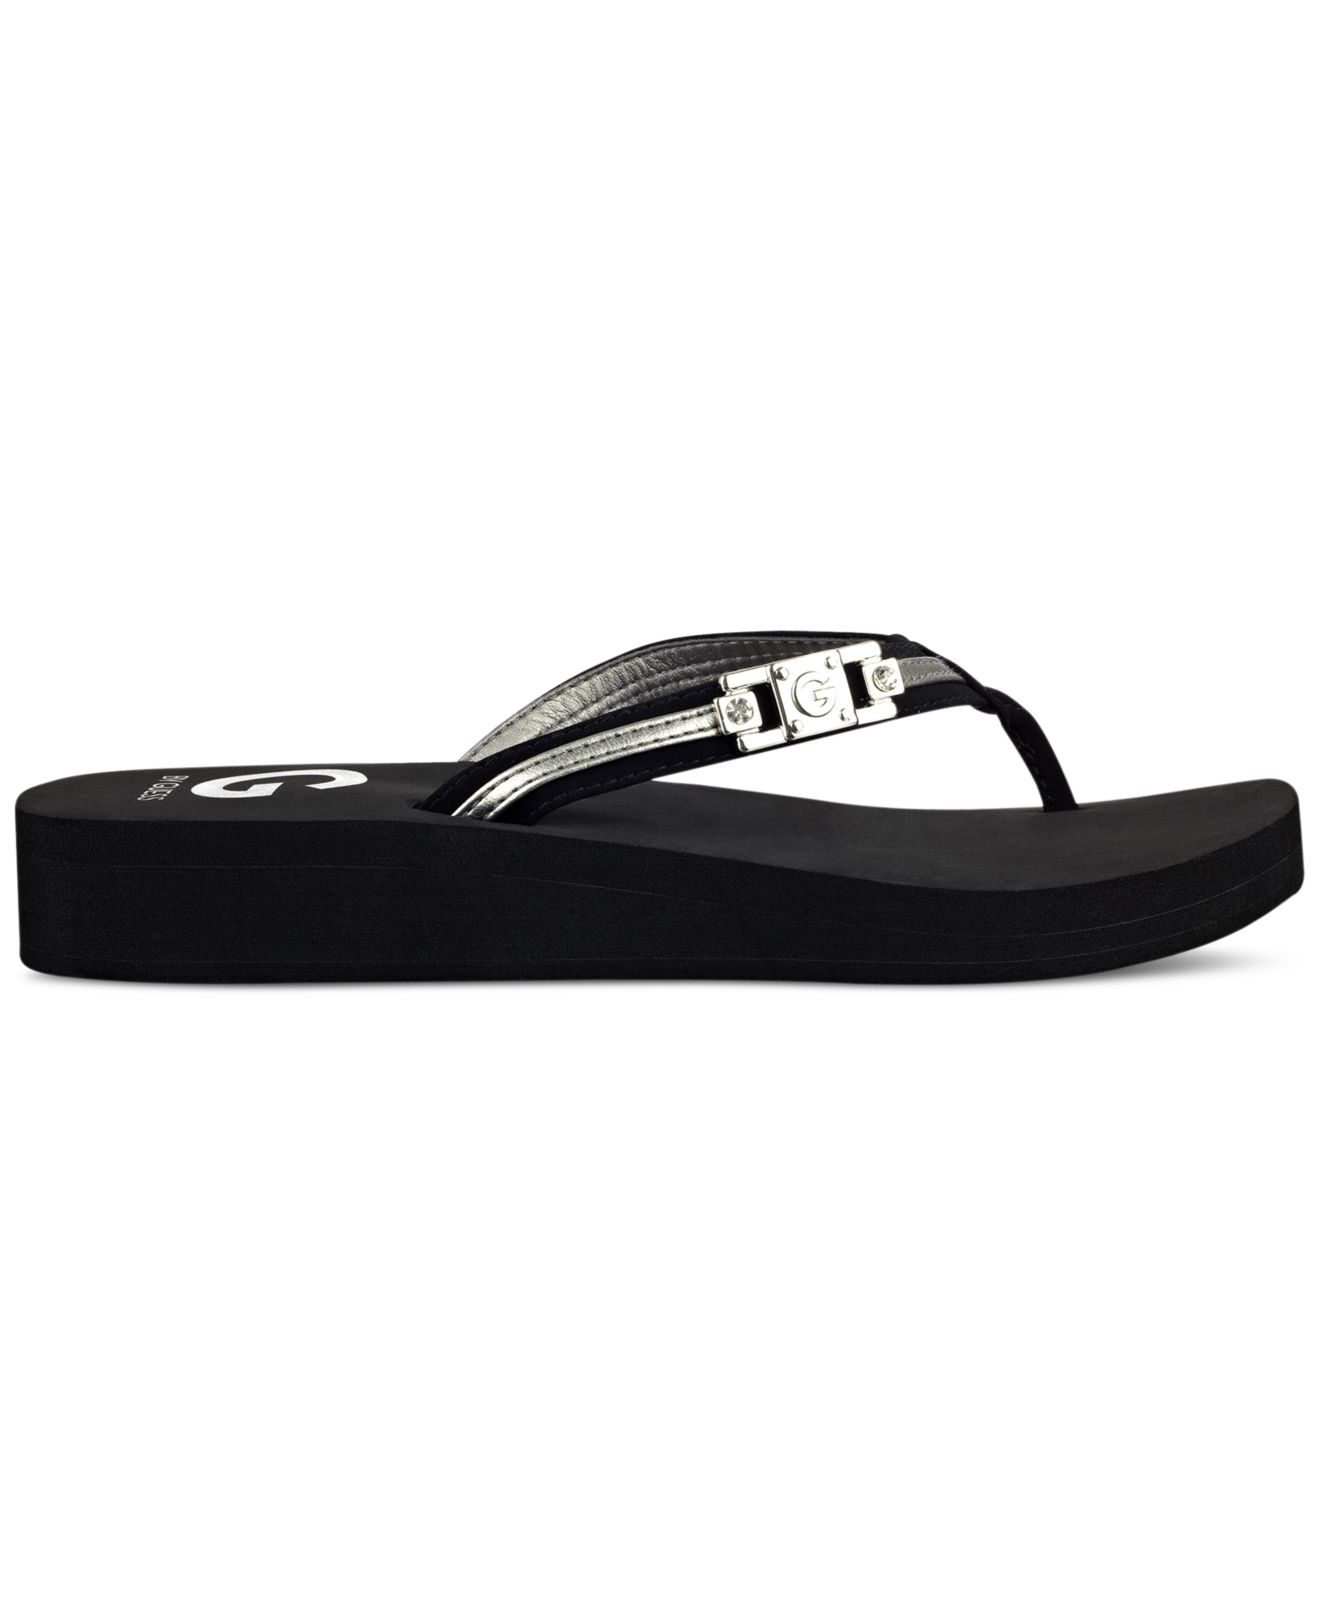 c9275b975464a Lyst - G by Guess Ali Flip-flops in Black